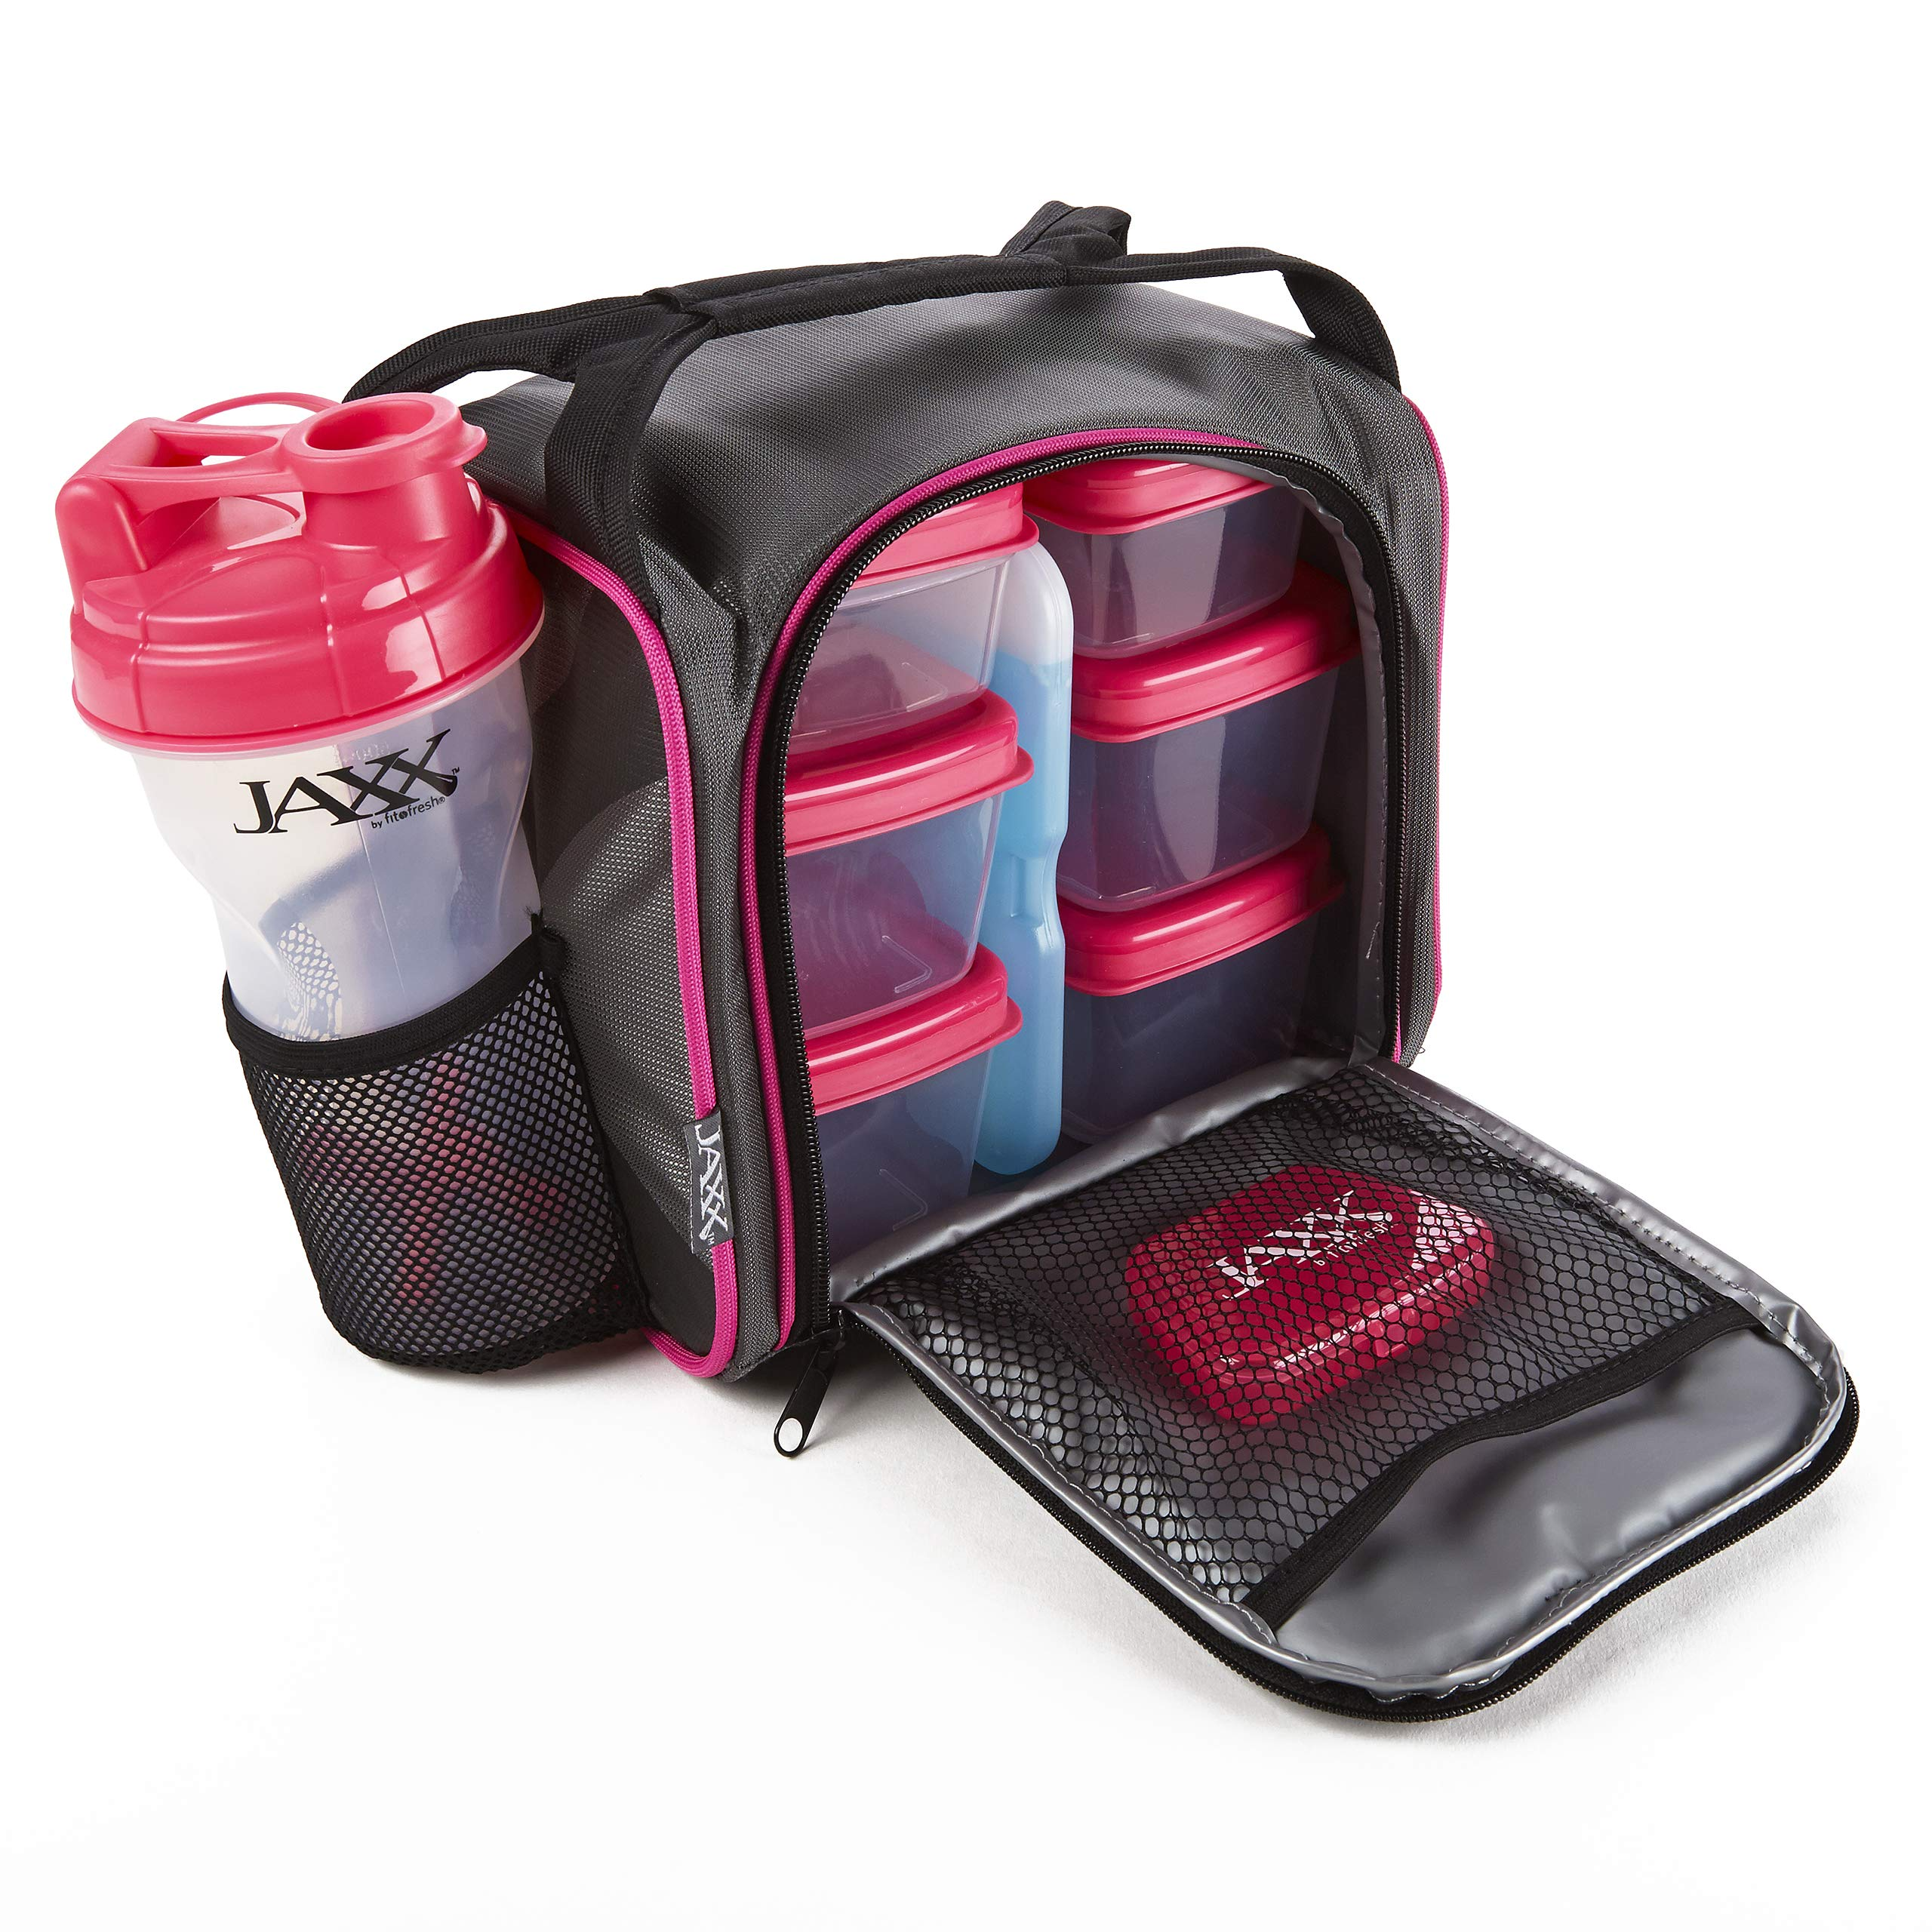 Fit and Fresh 944FFJX232C Original Jaxx FitPak Insulated Cooler Lunch Box, Meal Prep Bag with Portion Control Containers, Ice Pack, 28 oz Shaker, Standard, Pink by Fit & Fresh